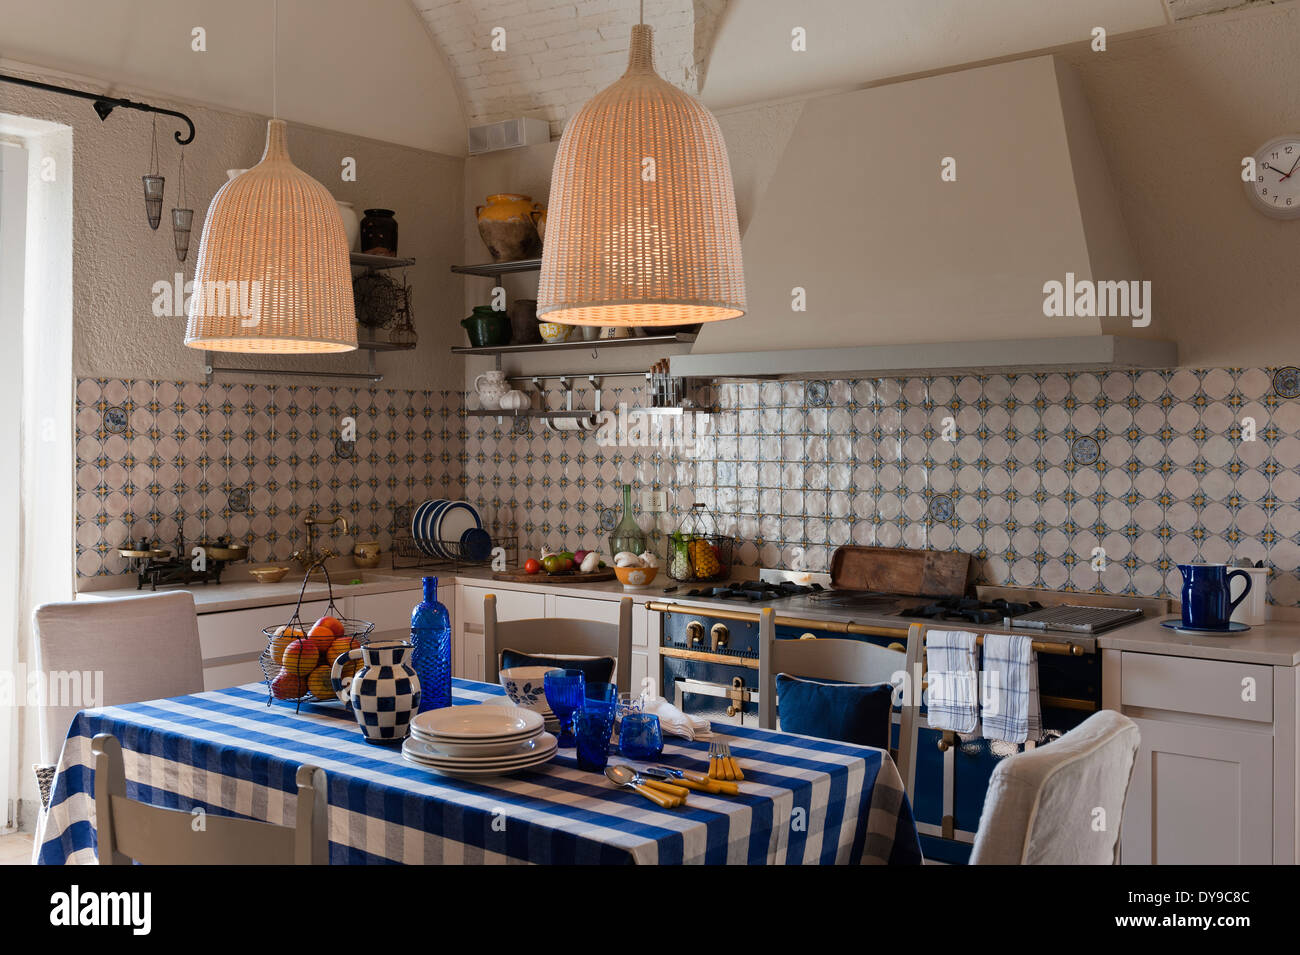 Range Cooker Stock Photos Range Cooker Stock Images Alamy